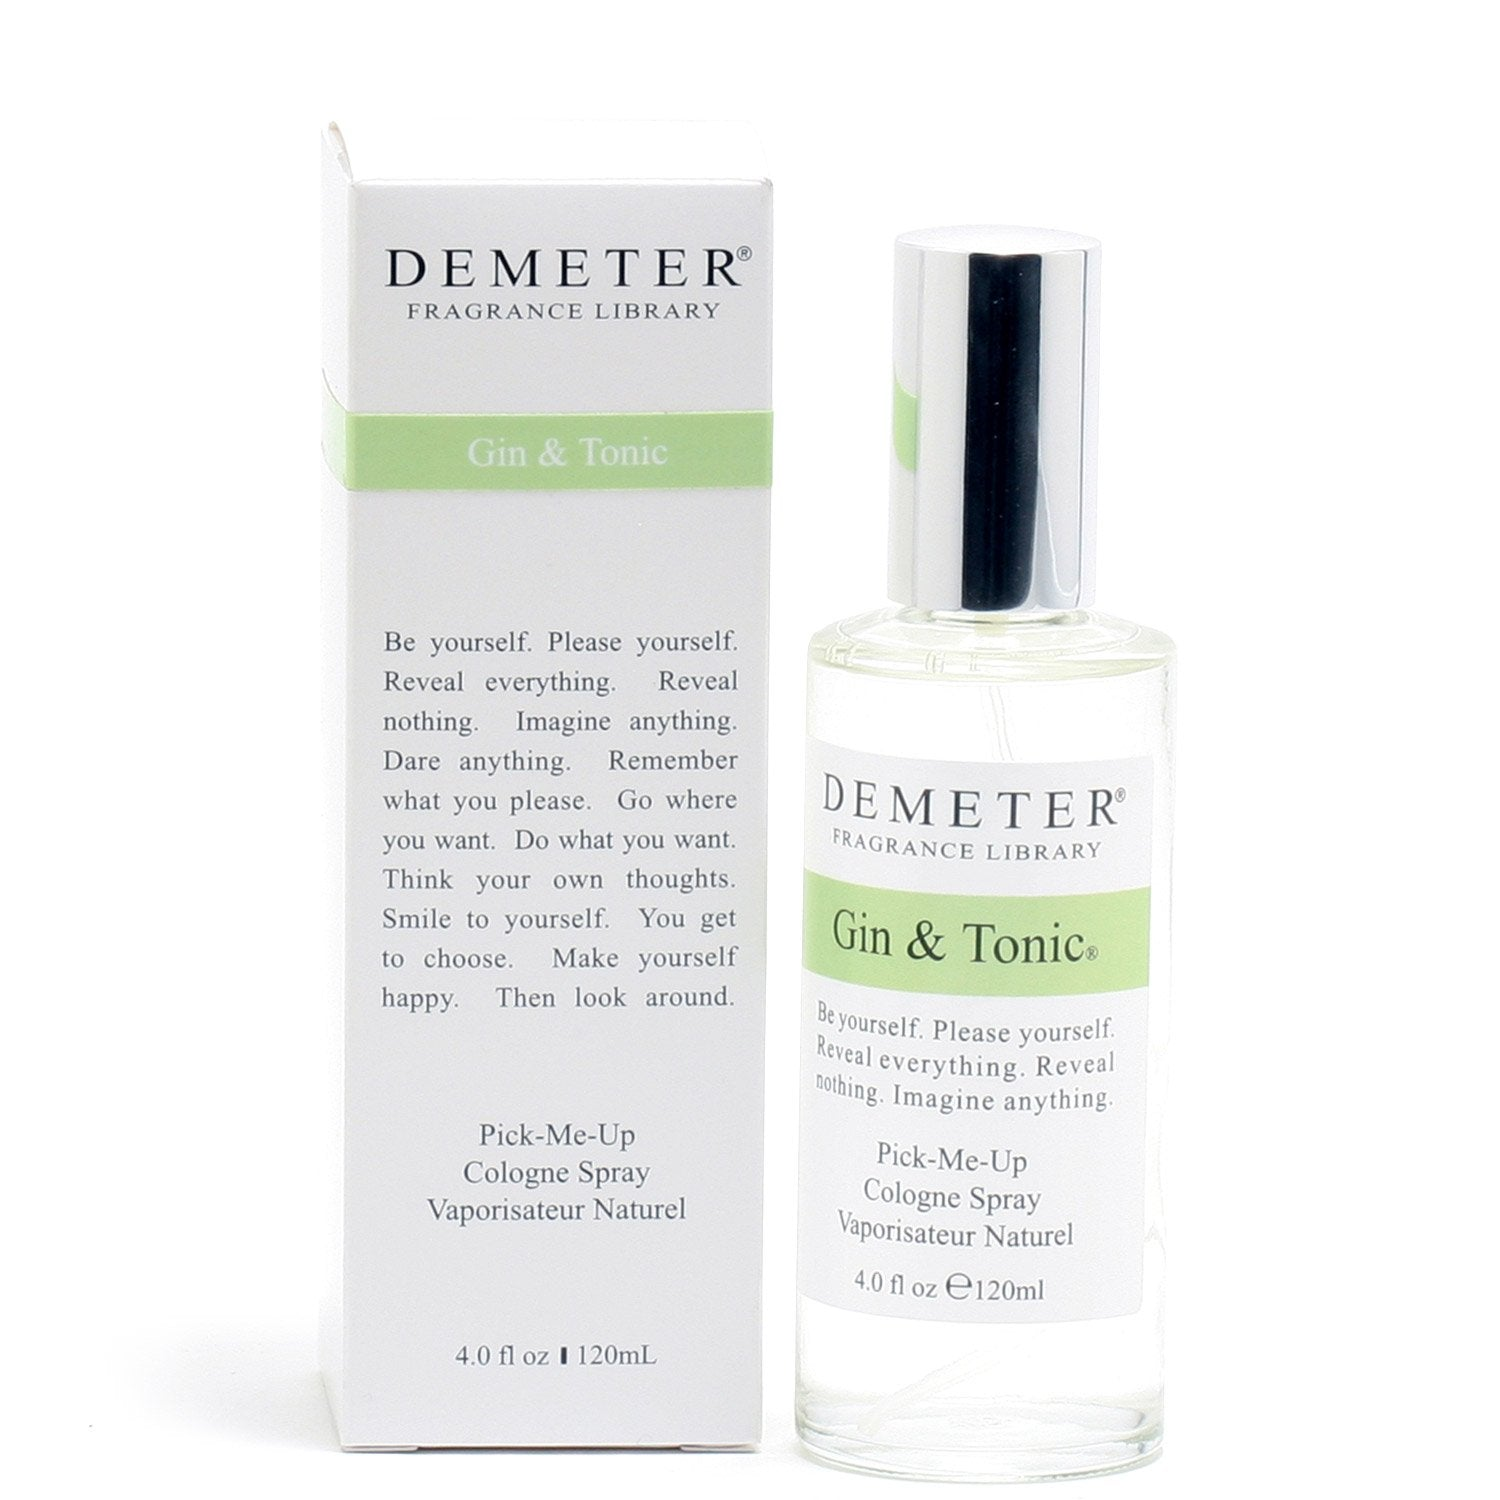 Cologne - DEMETER GIN & TONIC FOR MEN - COLOGNE SPRAY, 4.0 OZ